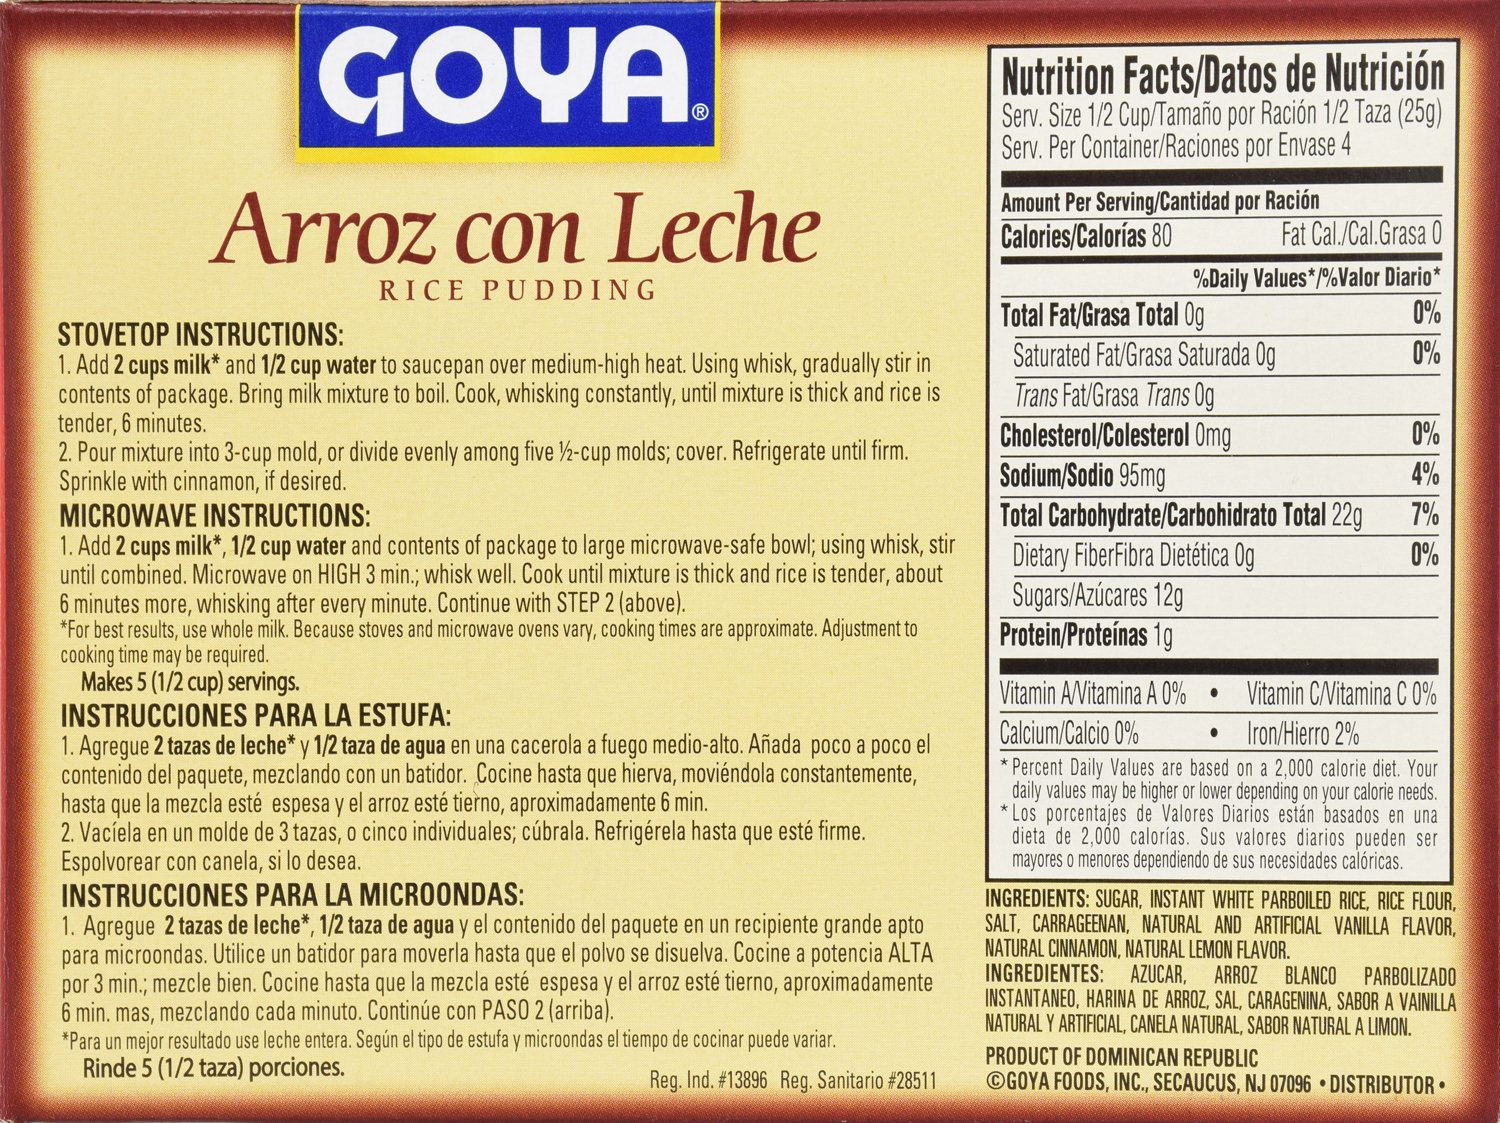 Amazon.com : Goya Foods Arroz Con Leche Rice Pudding, 4.25 Ounce (Pack of 36) : Grocery & Gourmet Food